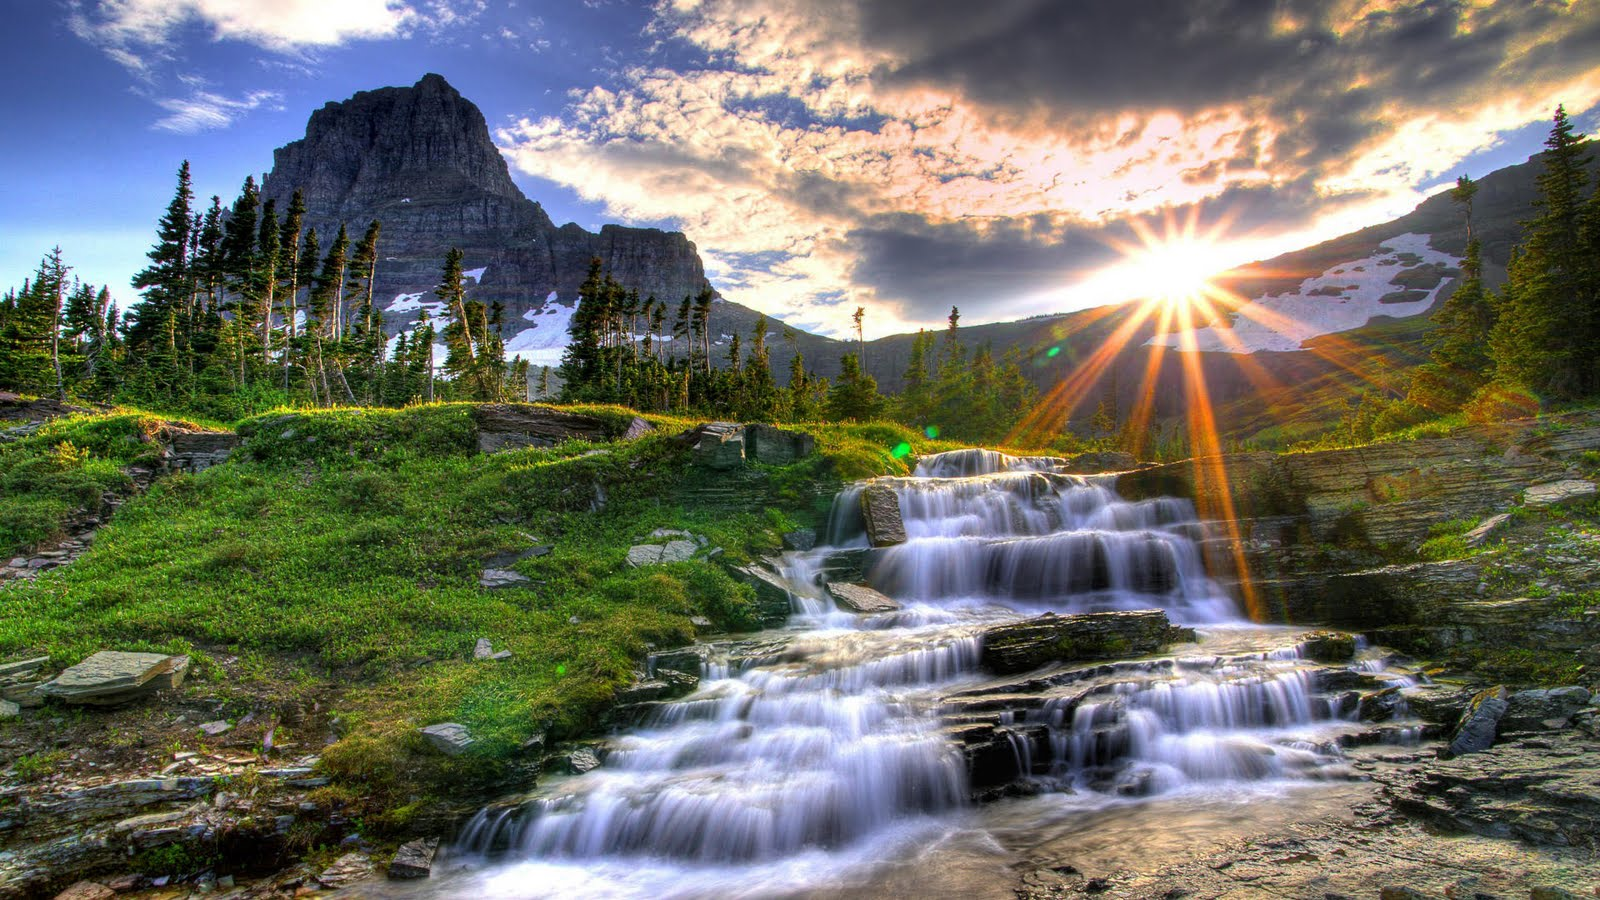 http://2.bp.blogspot.com/-freSAiDtU-E/TaHVlRh-uaI/AAAAAAAACX4/jPvjT1IBfRo/s1600/Waterfall_high_quality_hd_wallpaper.jpg